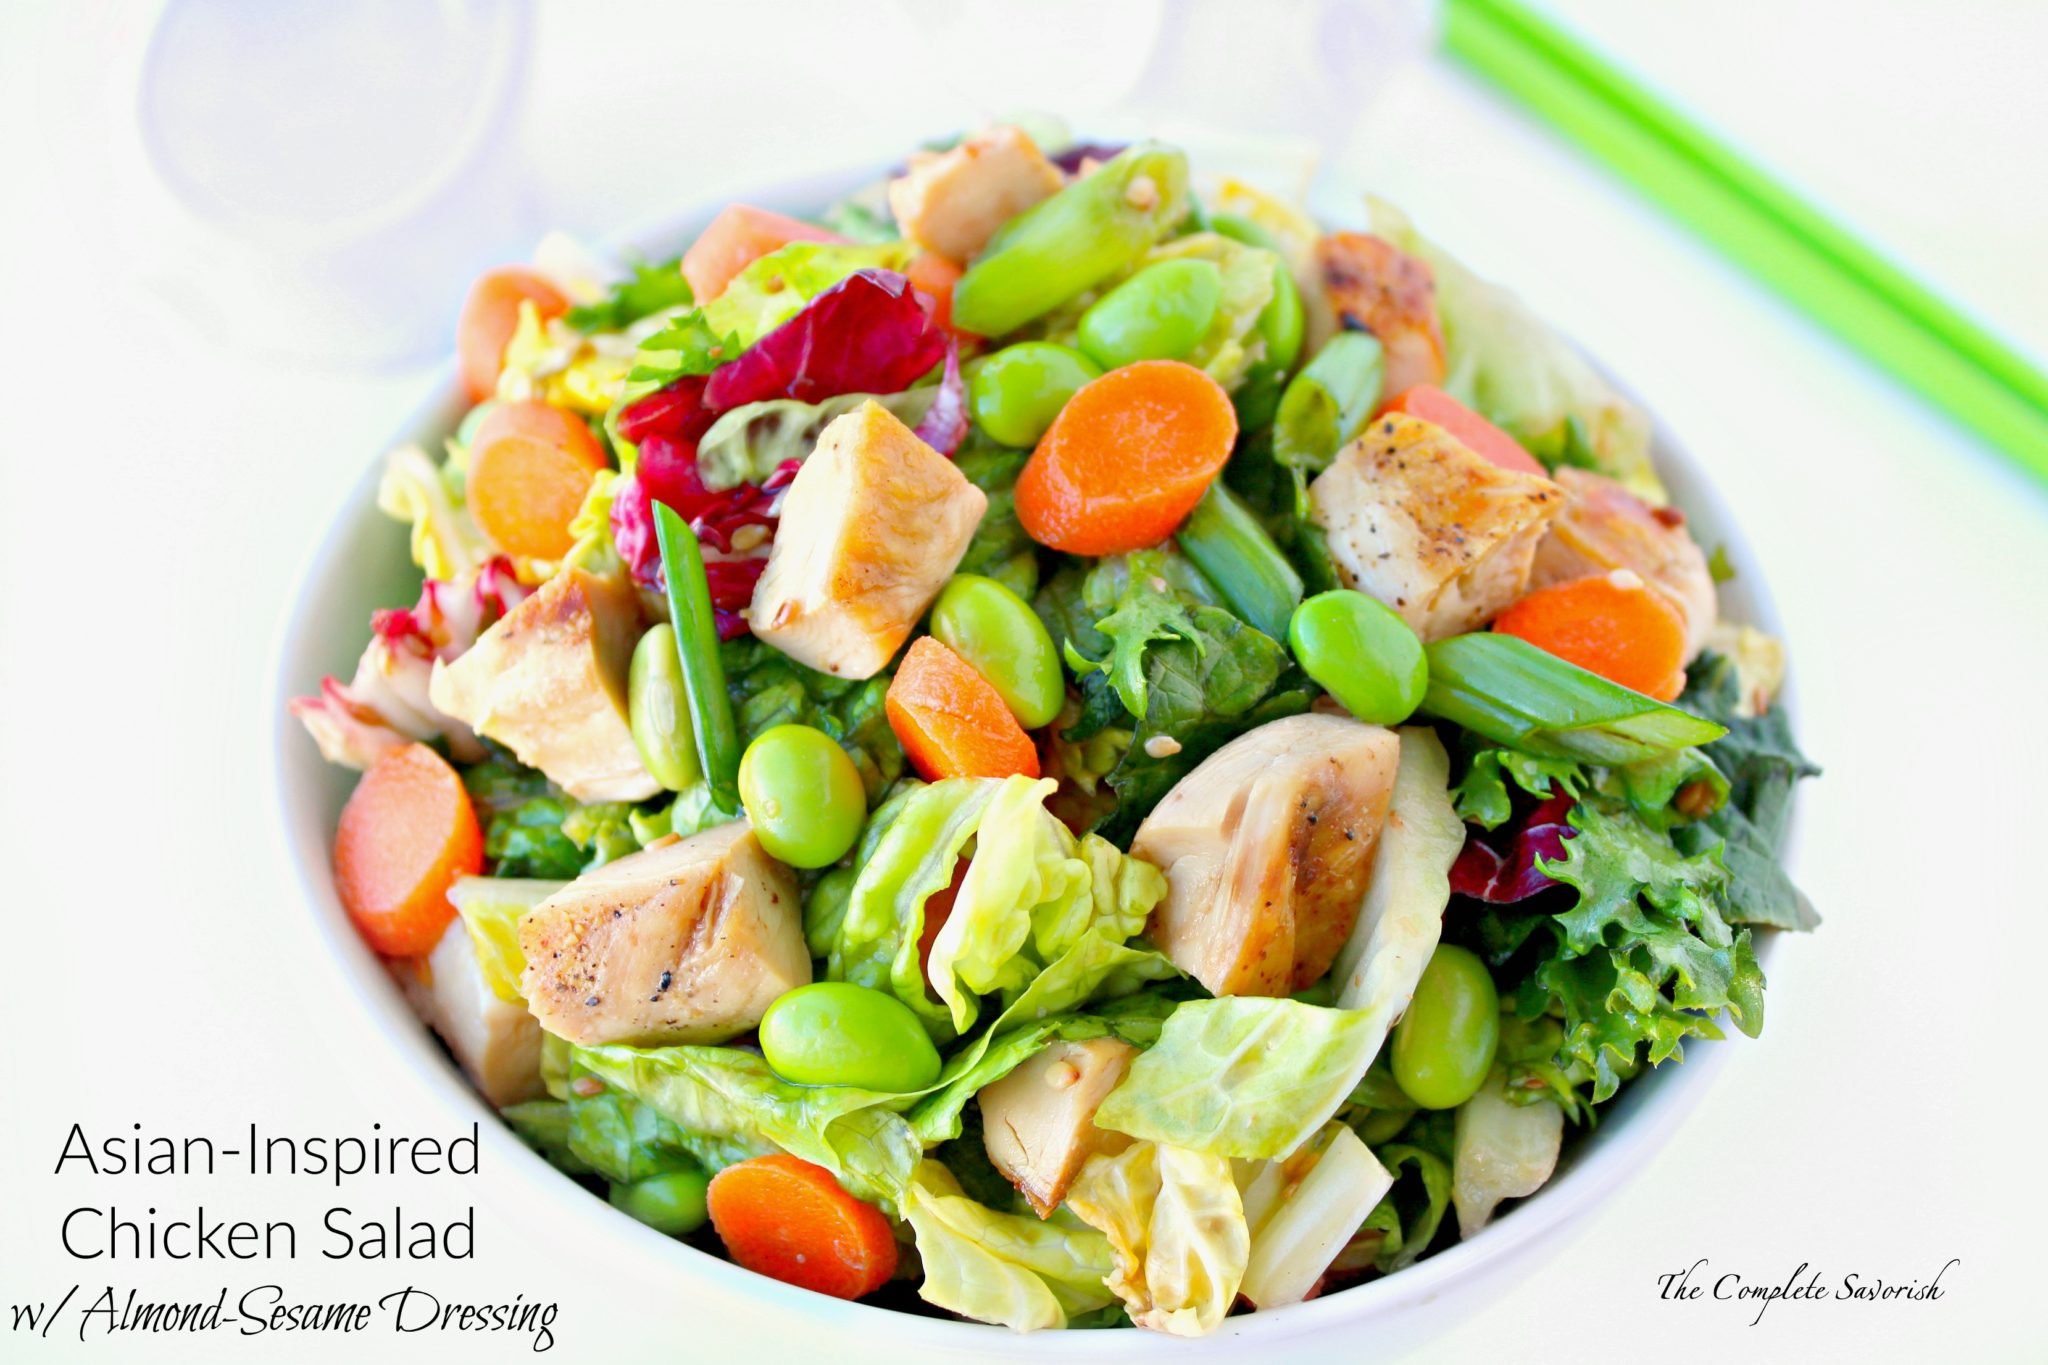 Asian-Inspired Chicken Salad with Almond-Sesame Dressing ~ Quick Salad of mixed greens, Napa cabbage, grilled chicken, carrots, green onions, edamame all tossed in tangy dressing of almond milk, sesame oil, and toasted sesame seeds ~ The Complete Savorist #SilkSipToSpoon ad